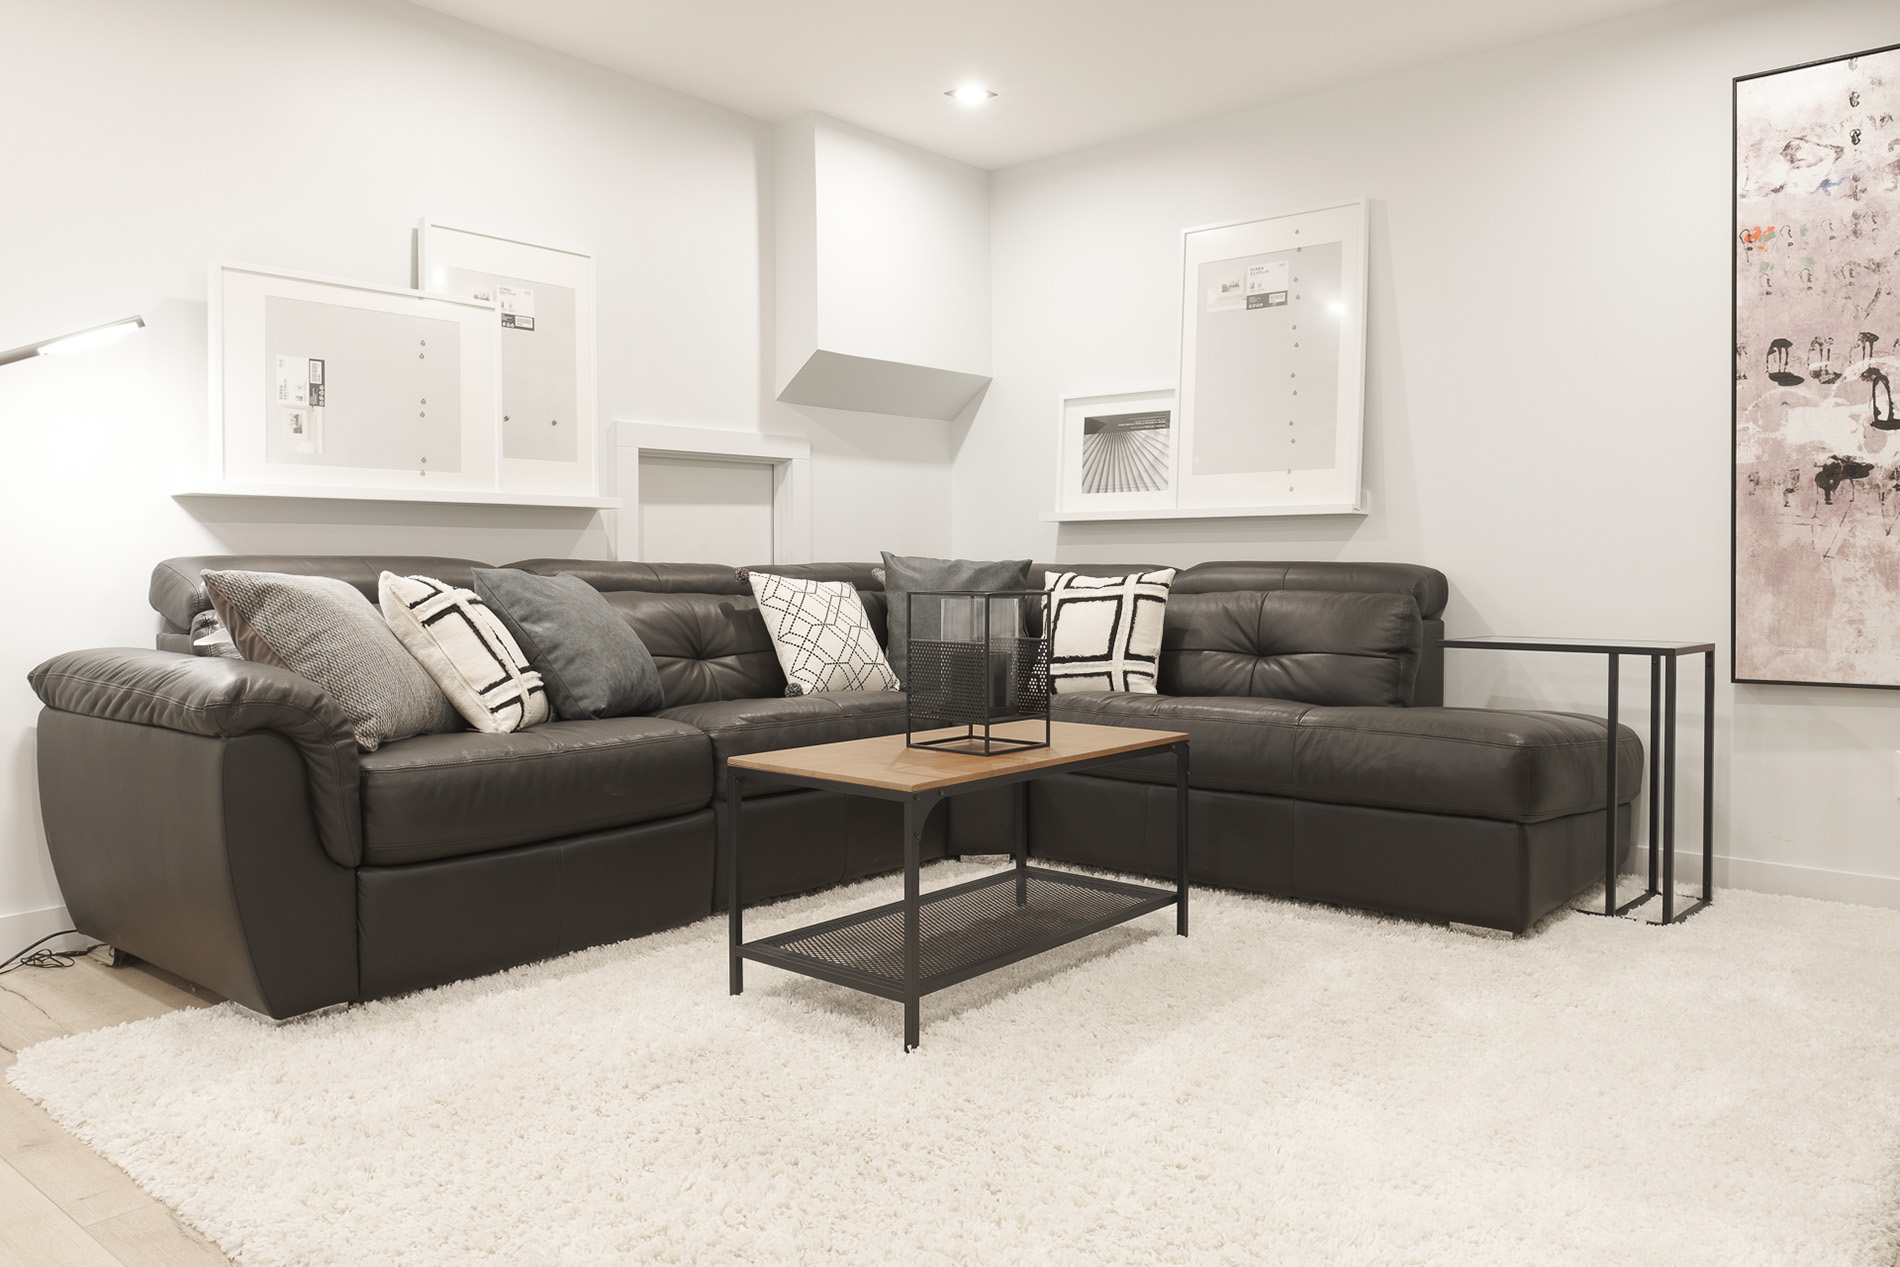 clear-space-design-co-fulton-dr-38.jpg